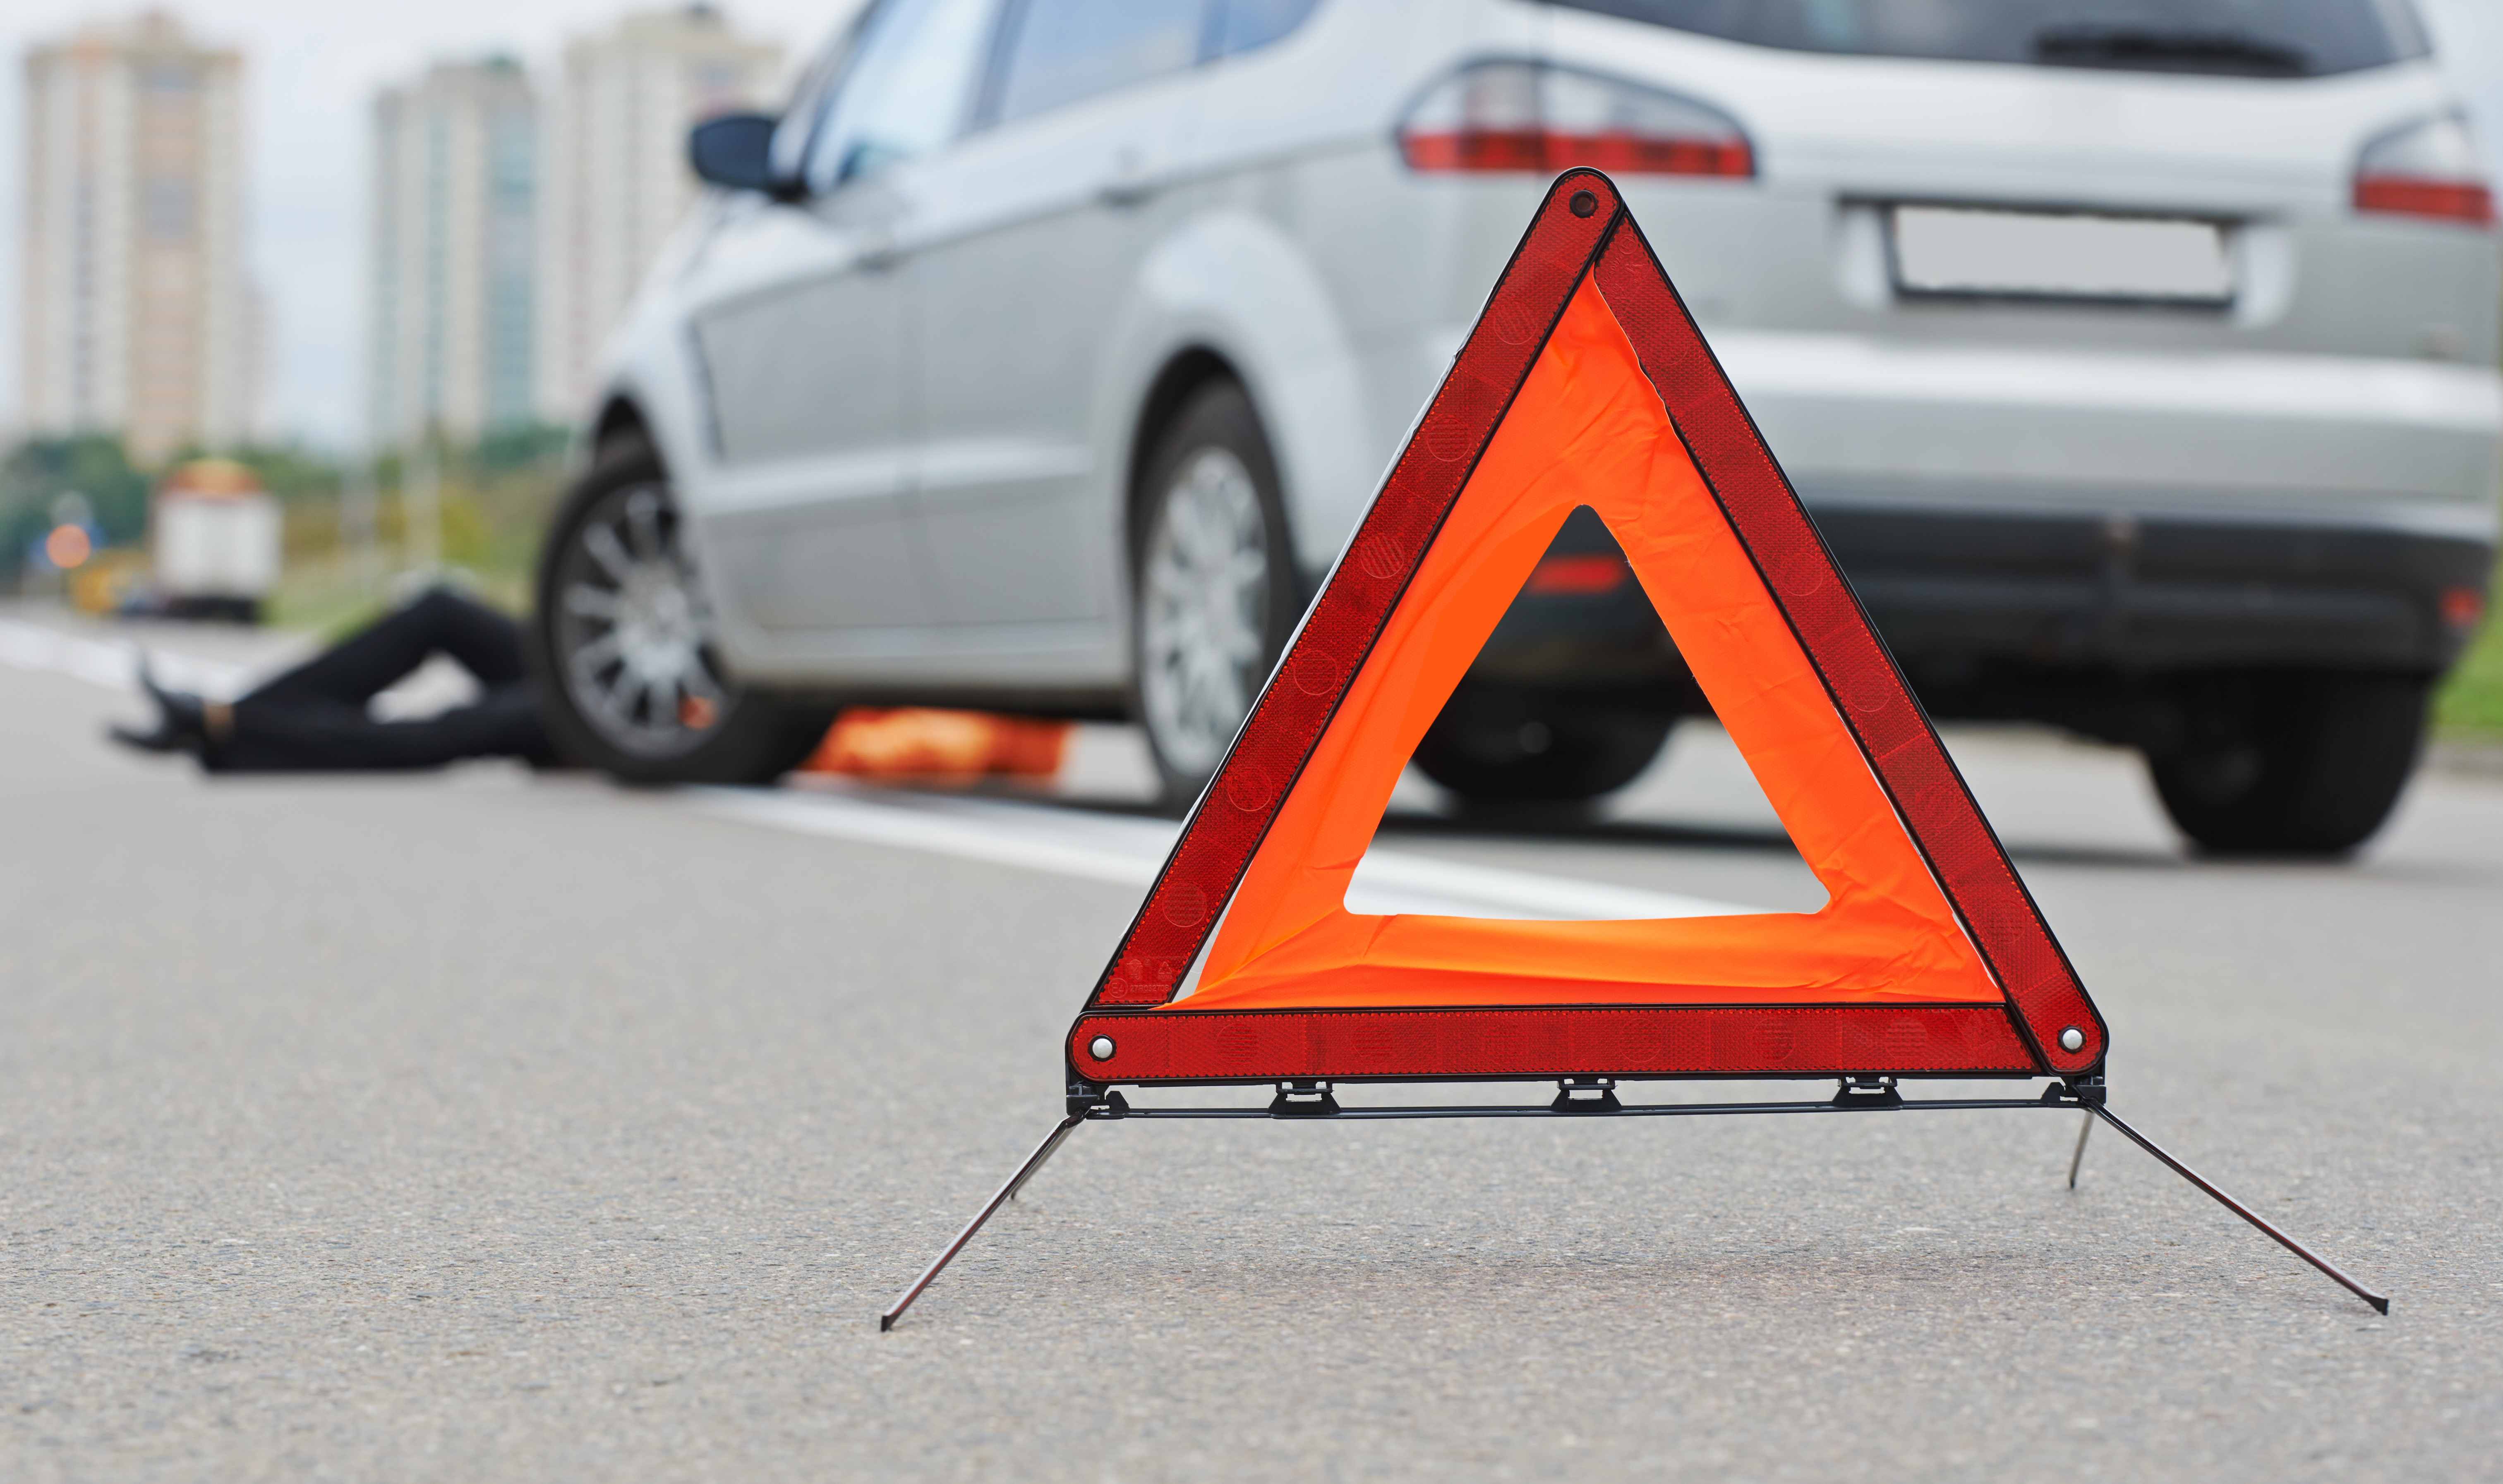 Pop up roadside warning cones with an out of focus car on the side of the road